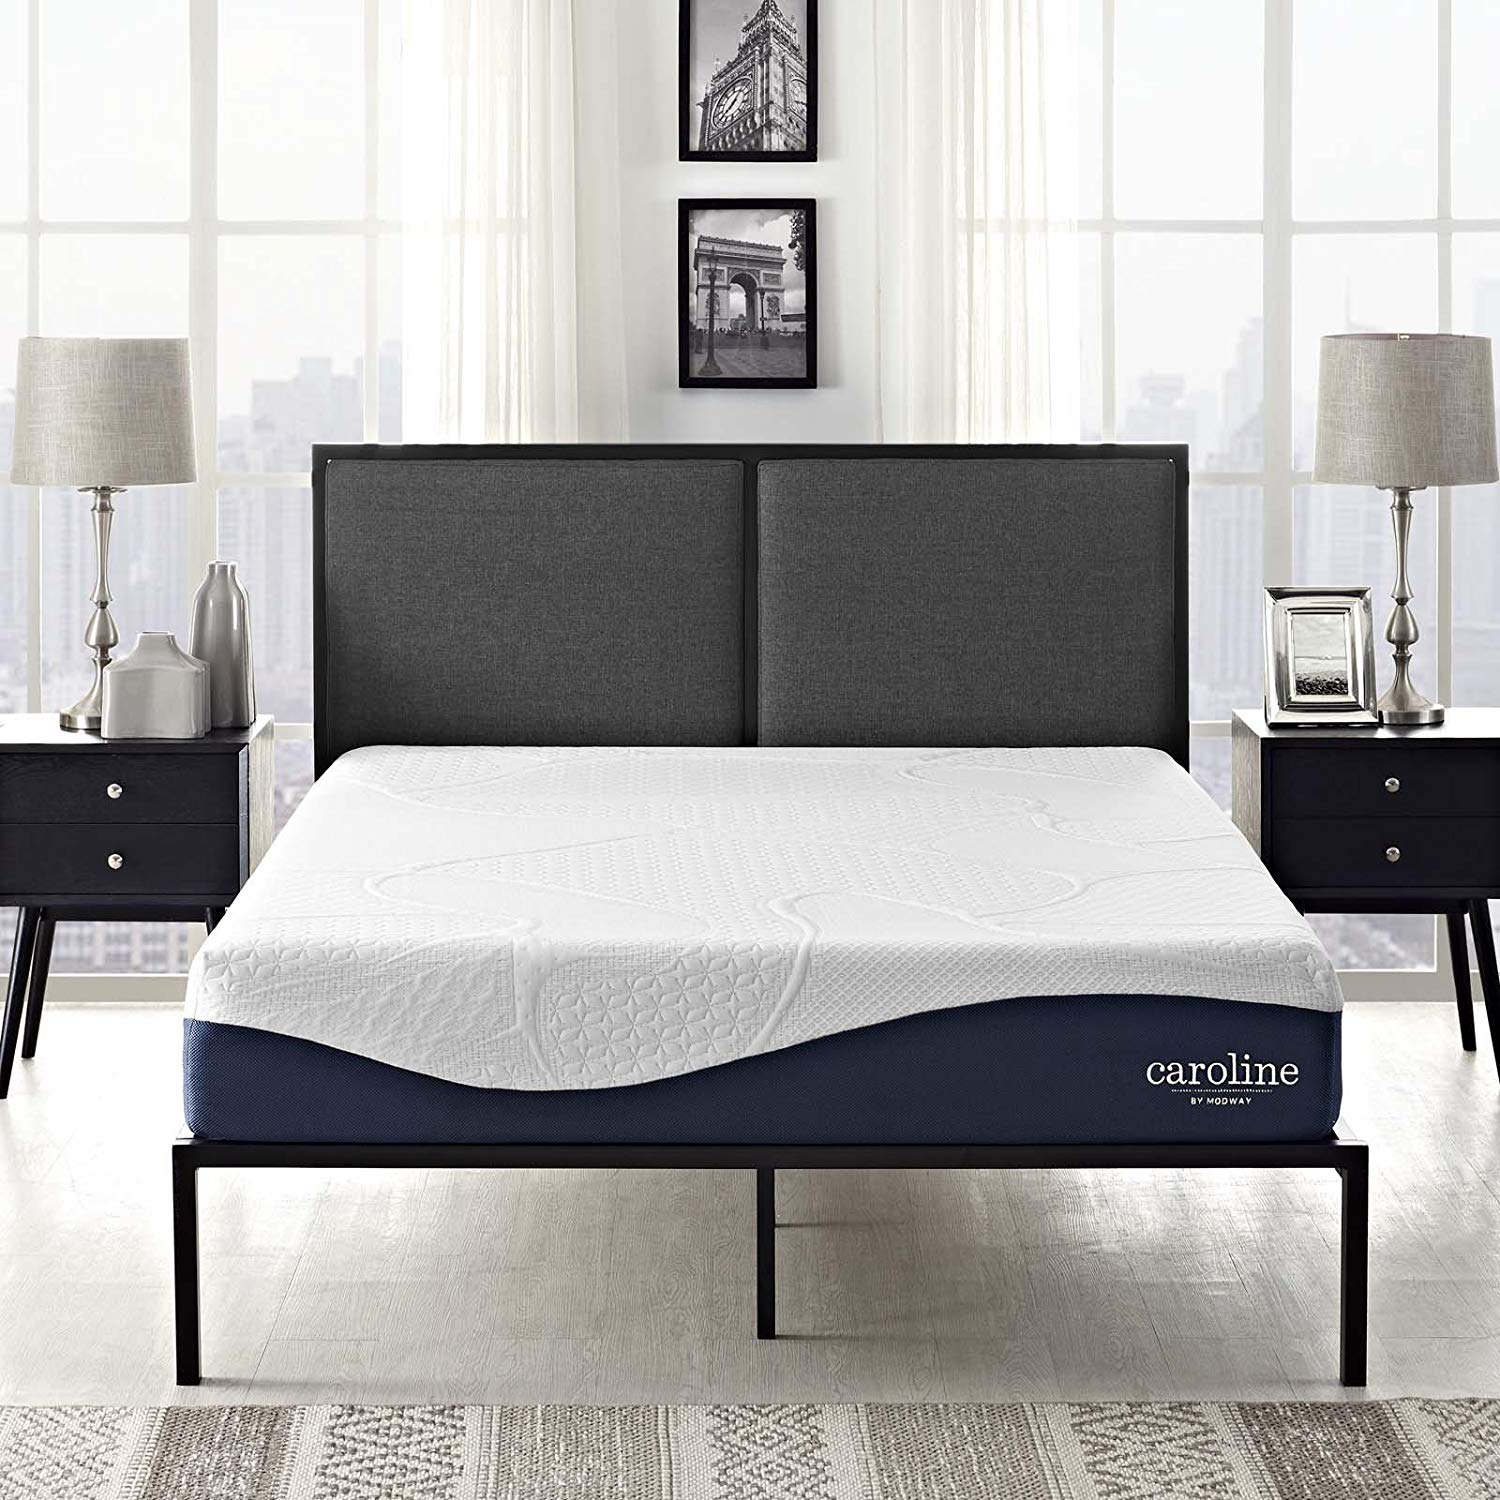 Modway Best Mattress for Lower Back Pain Review by www.snoremagazine.com